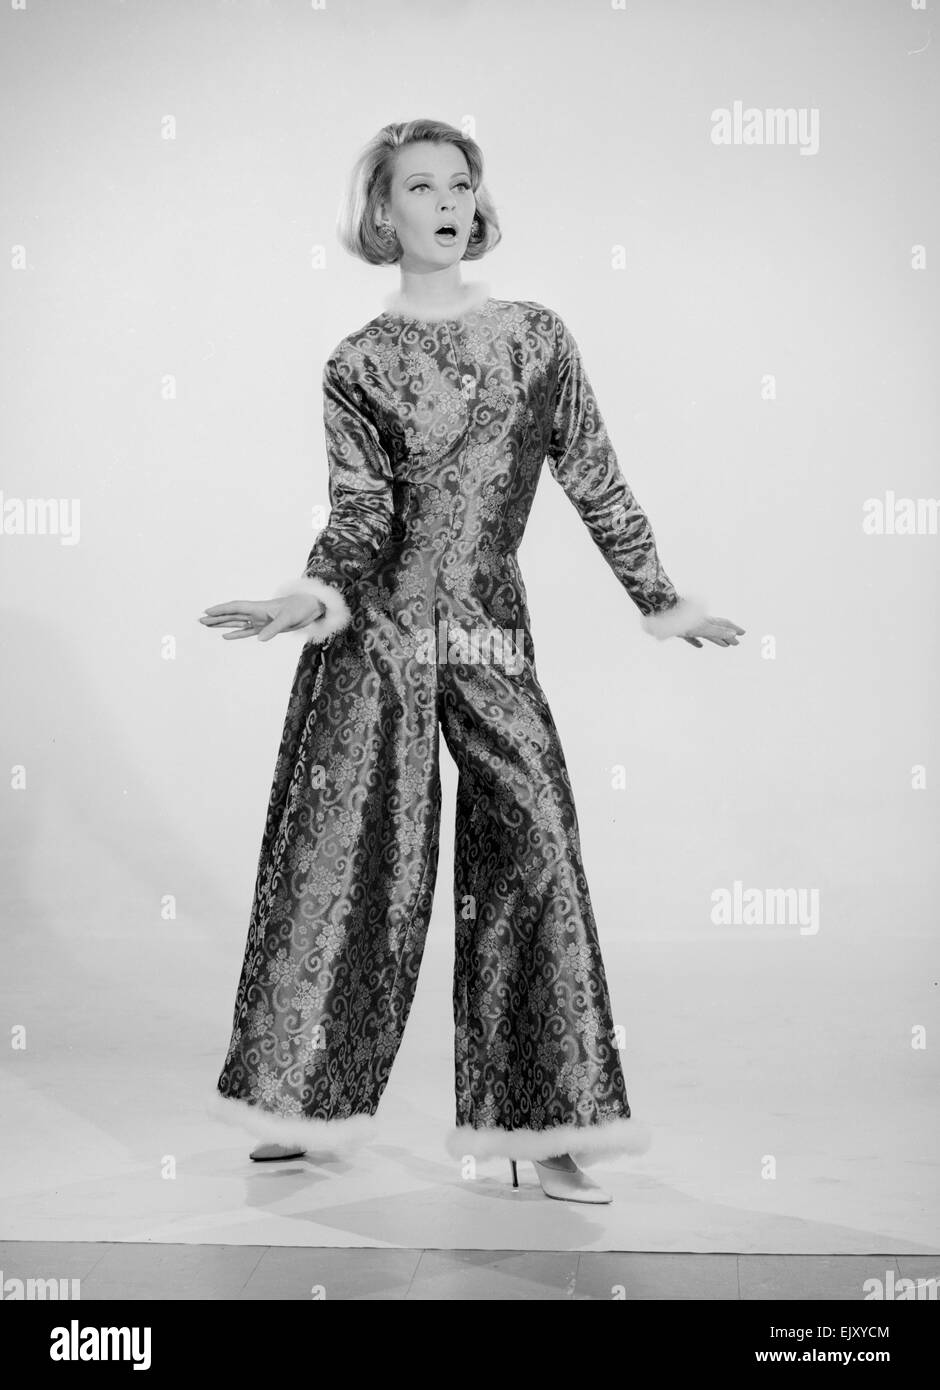 5fded7f932d9d Reveille Model Dawn Chapman modelling Pyjama Suit. Circa May 1963 - Stock  Image